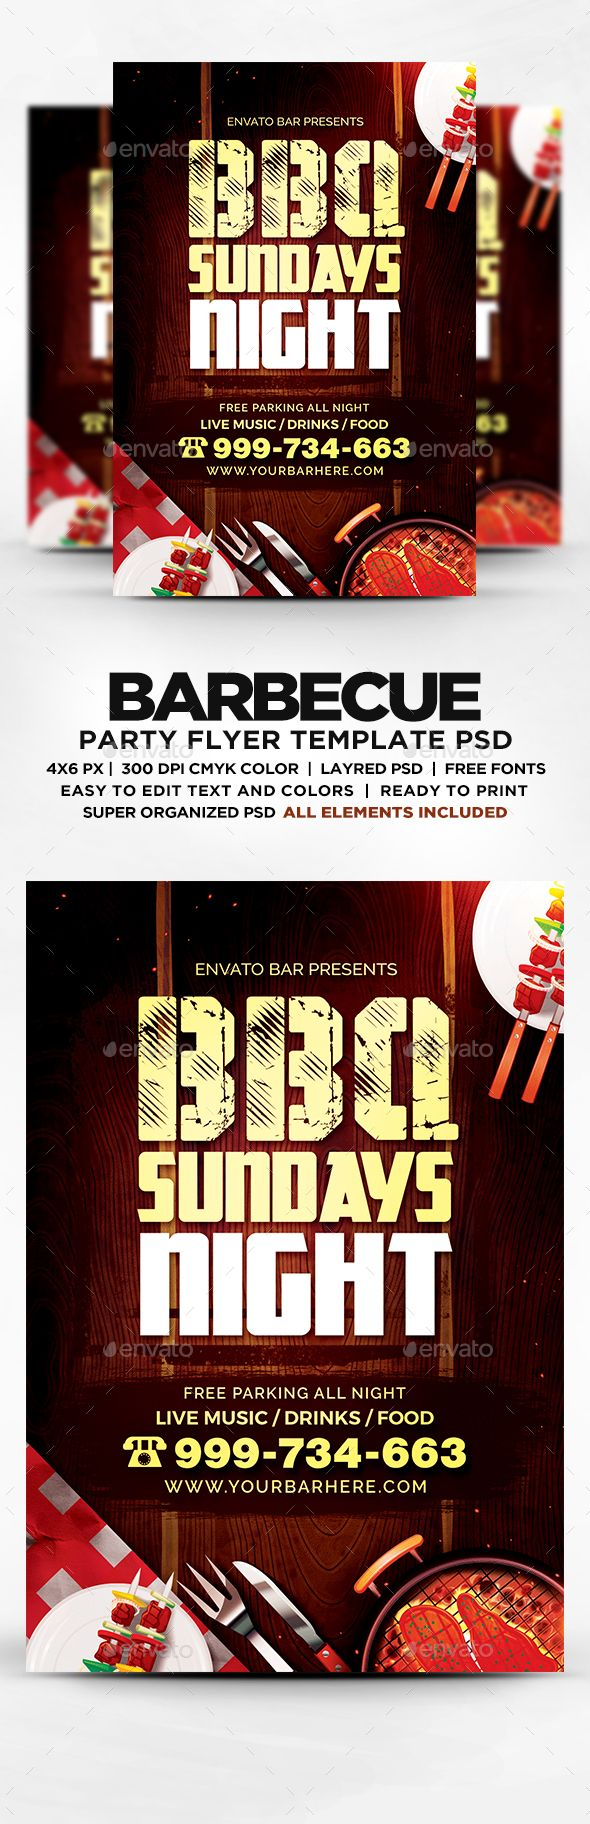 Best Bbq Flyer Templates  Psd Images On   Flyer